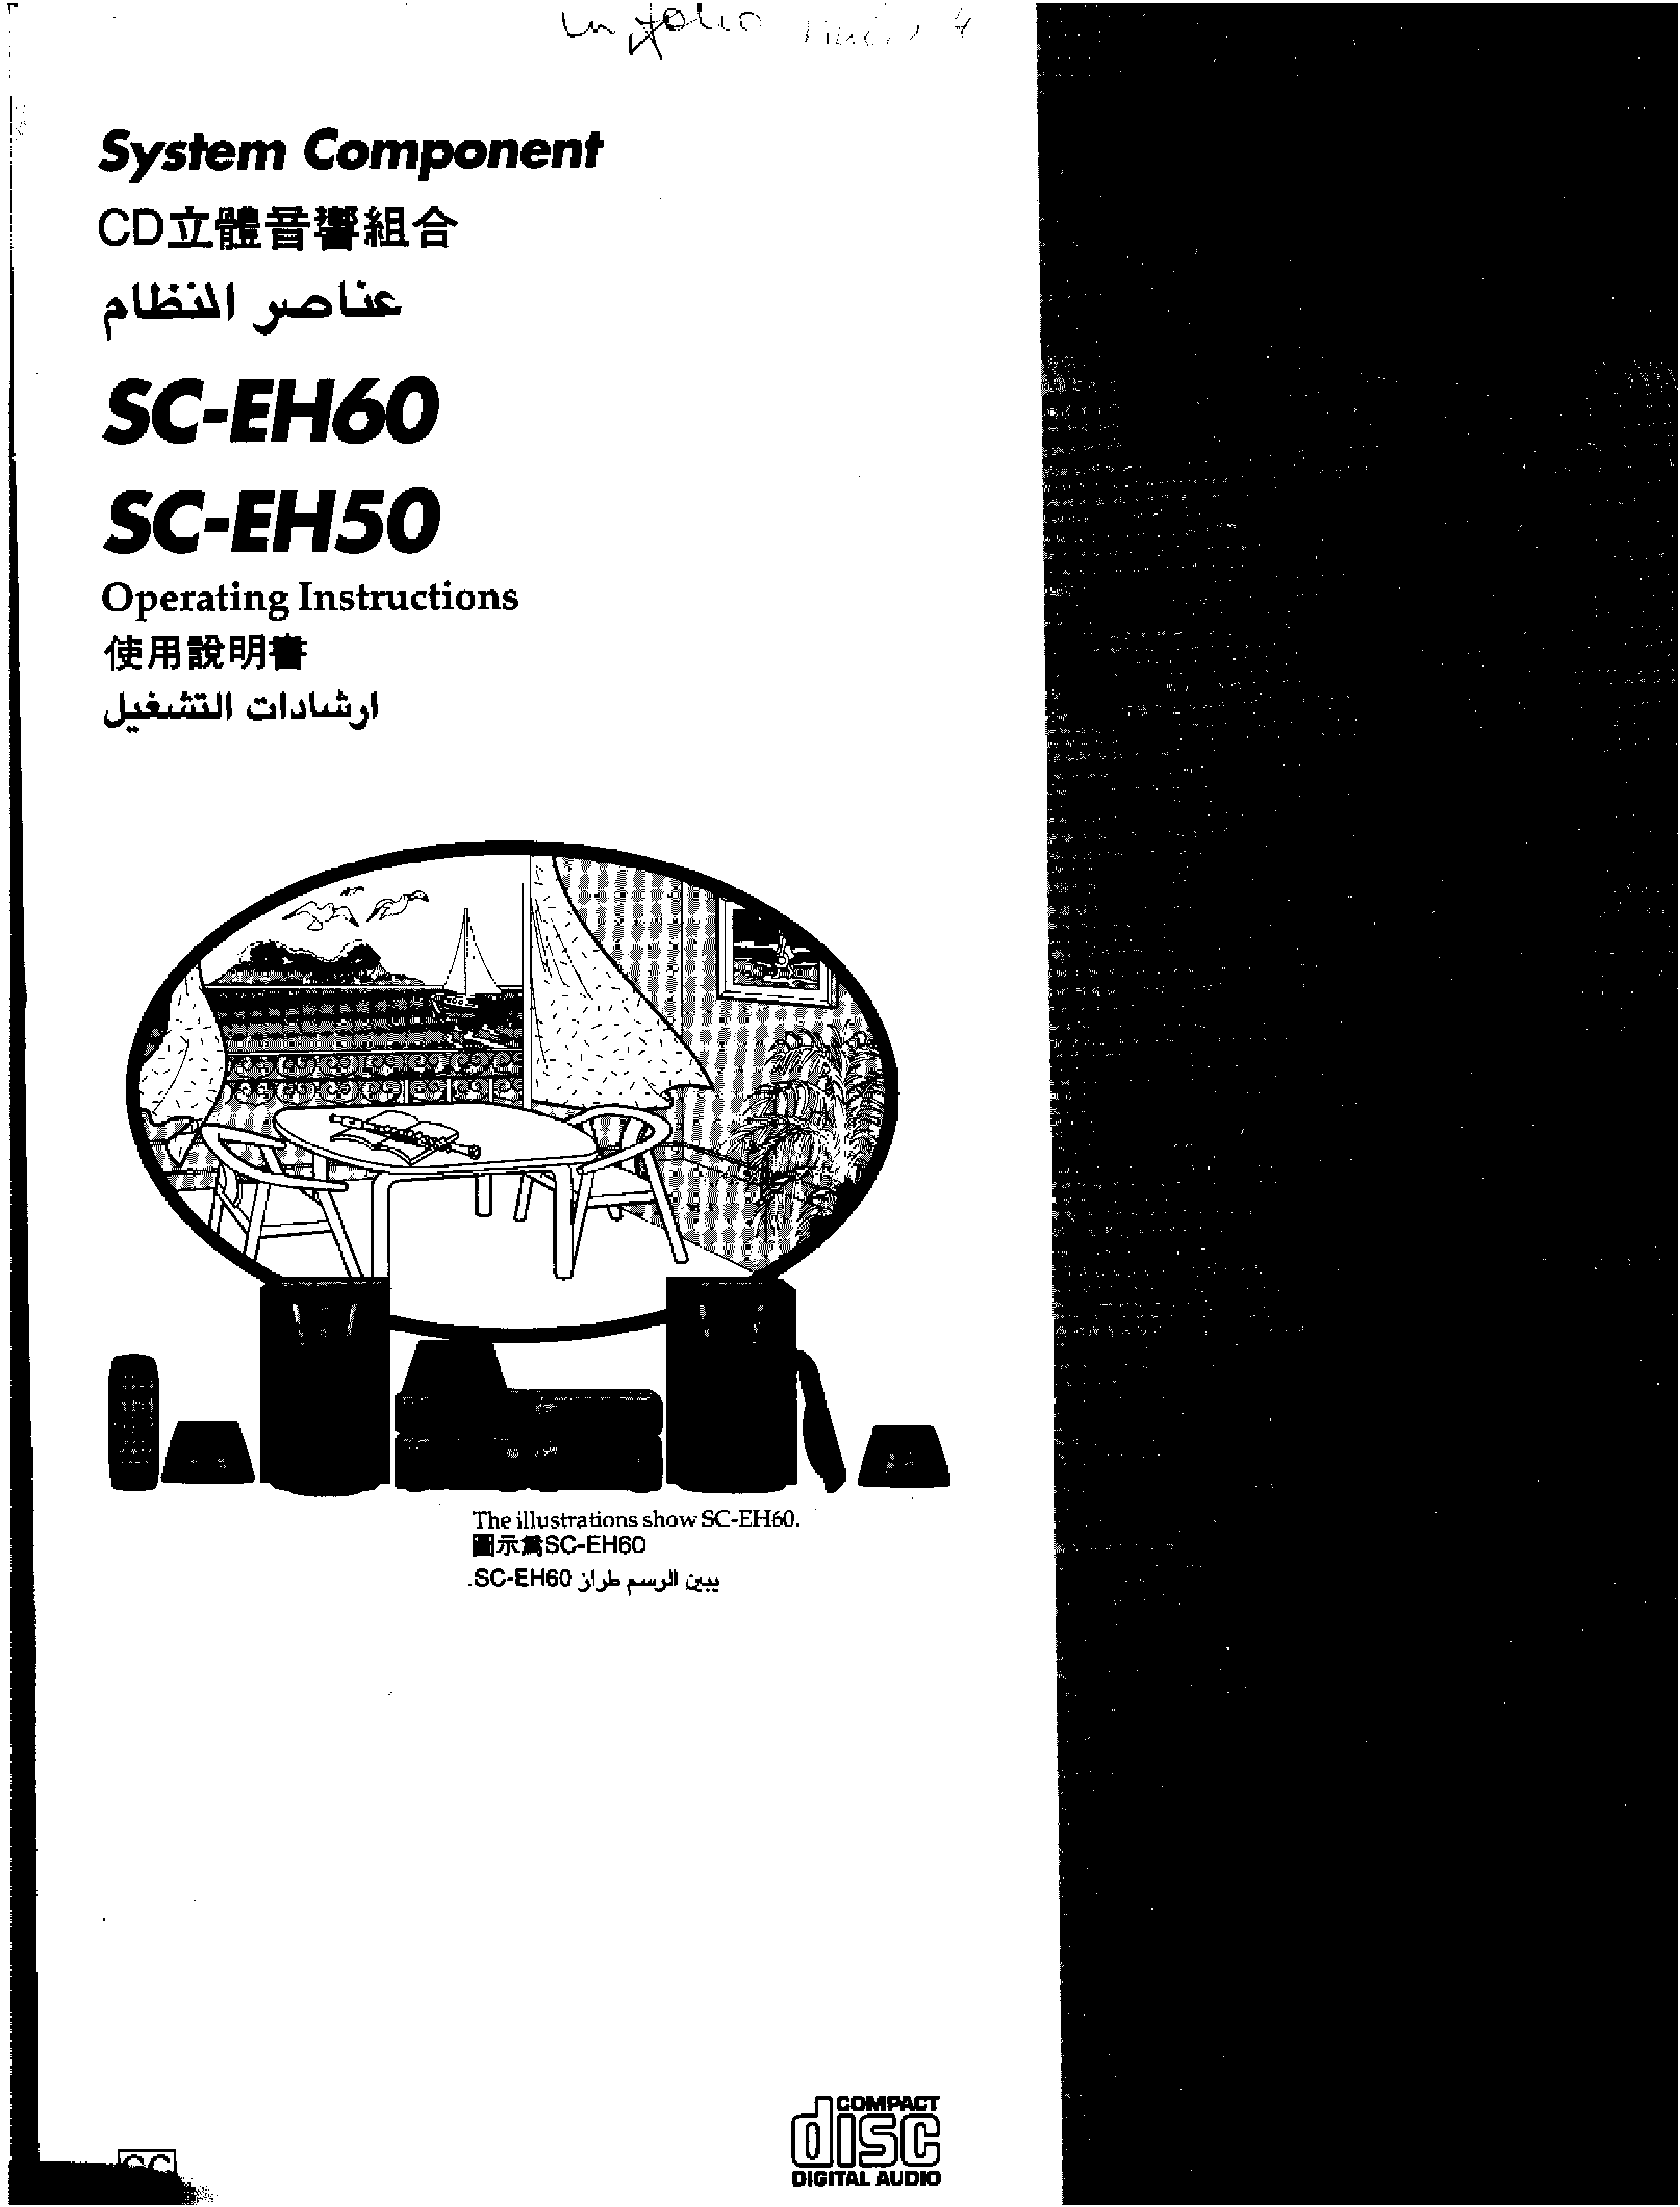 TECHNICS SC-EH60 - Owner's Manual Immediate Download